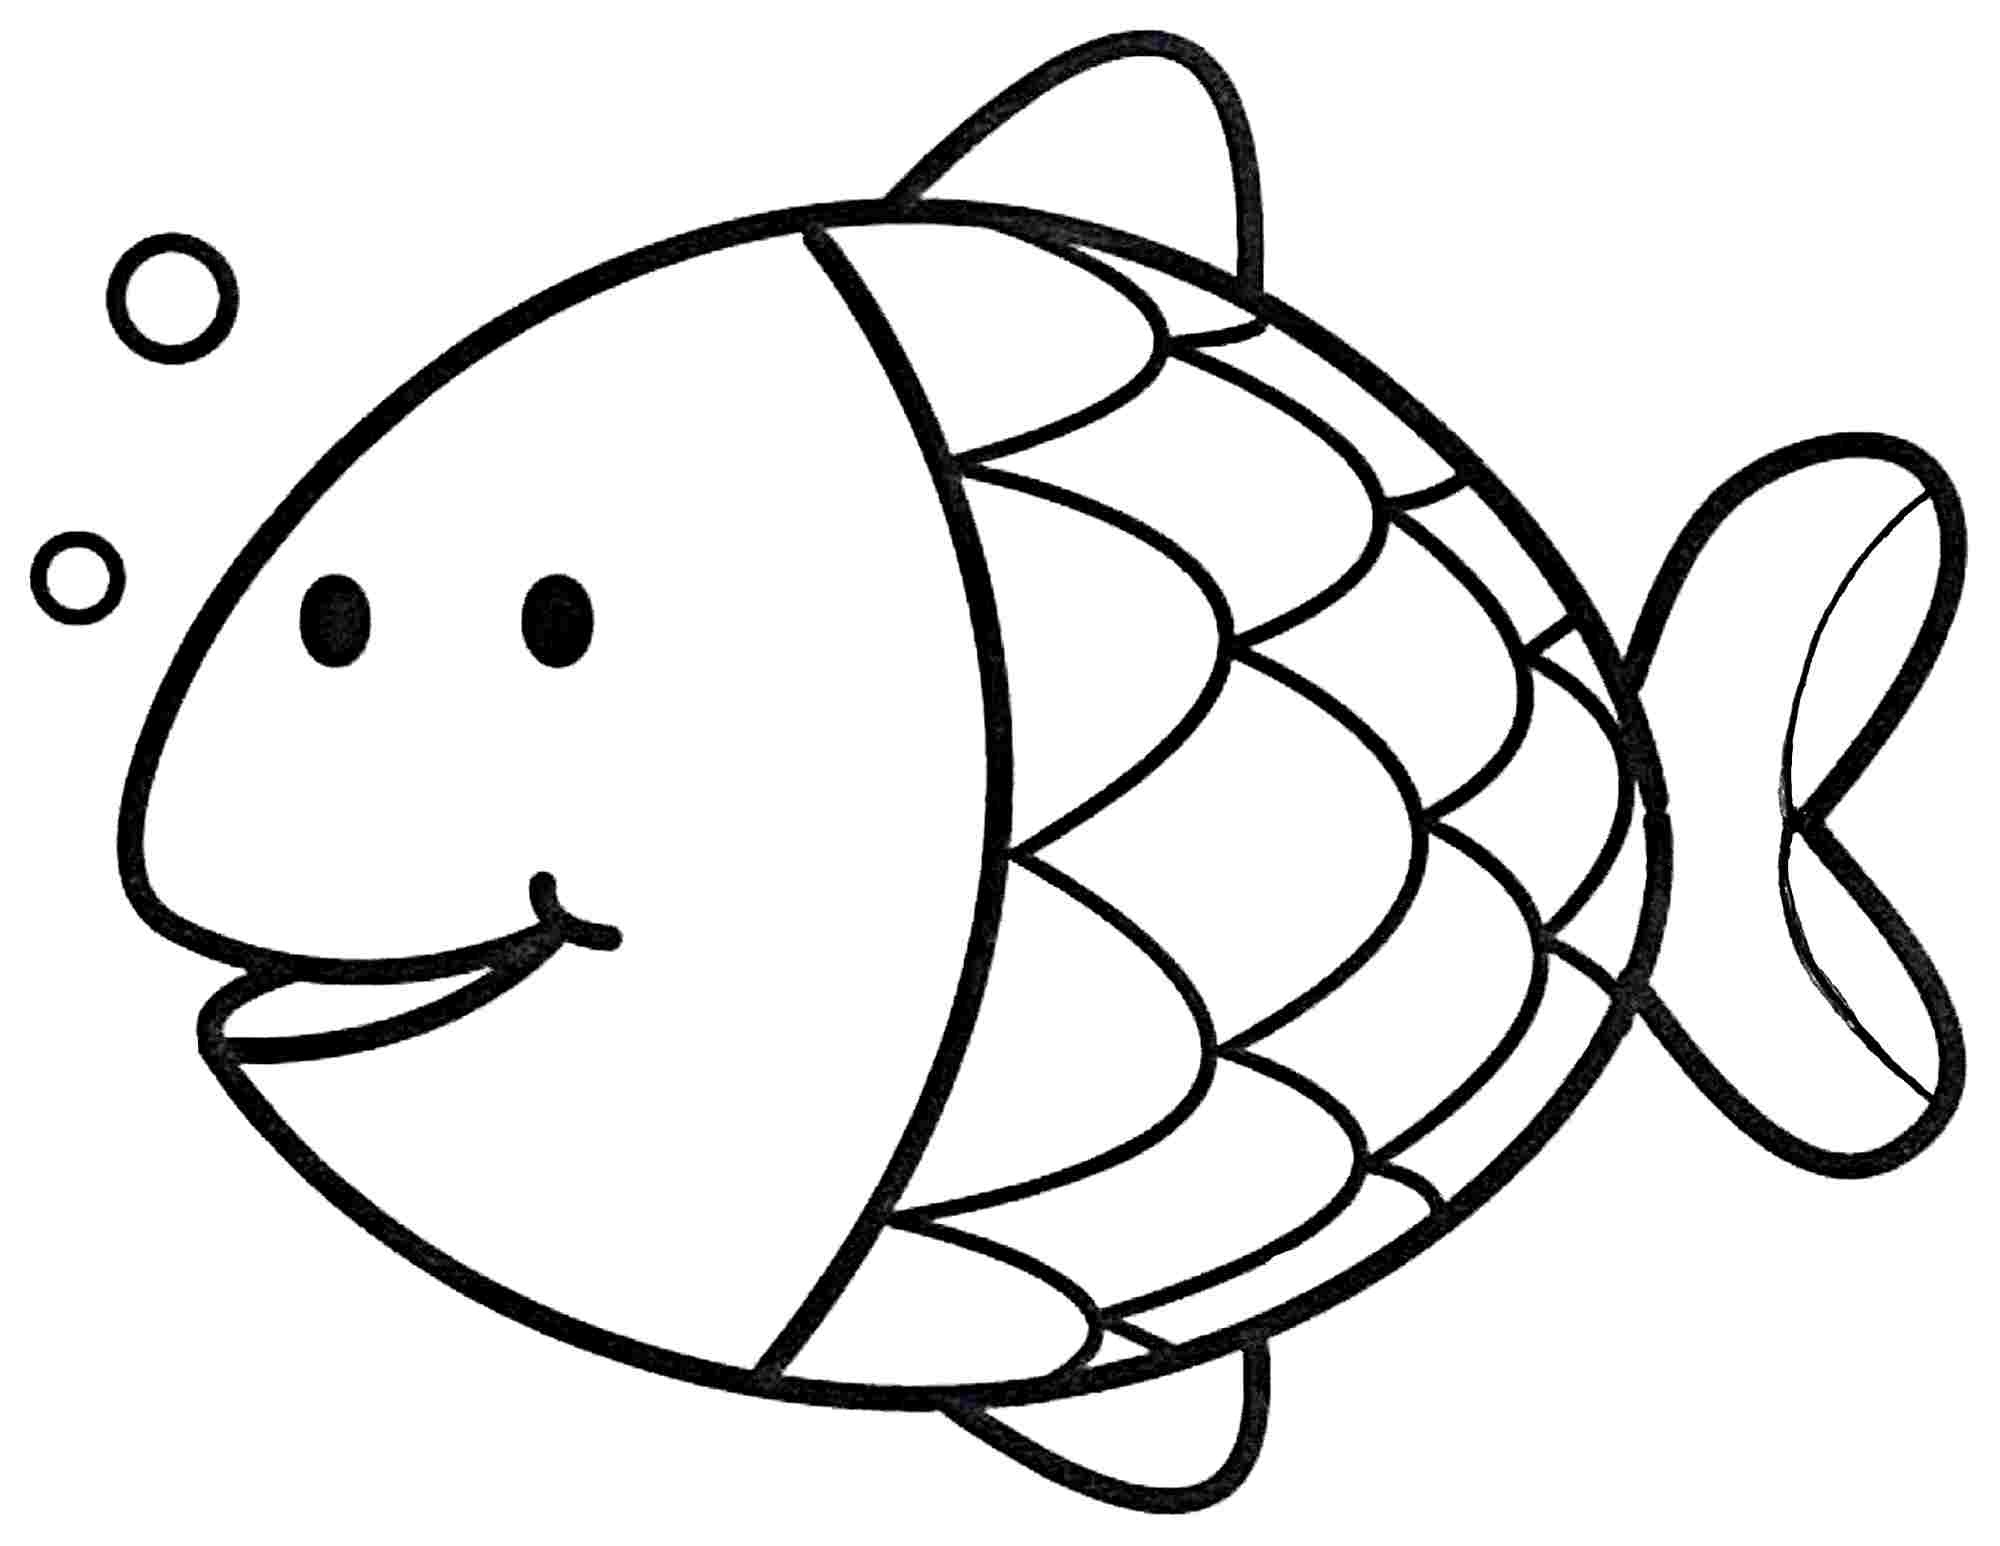 Coloring Pages: Coloring Ideas Free Sheets For Kids With Printable - Free Printable Coloring Pages For Toddlers